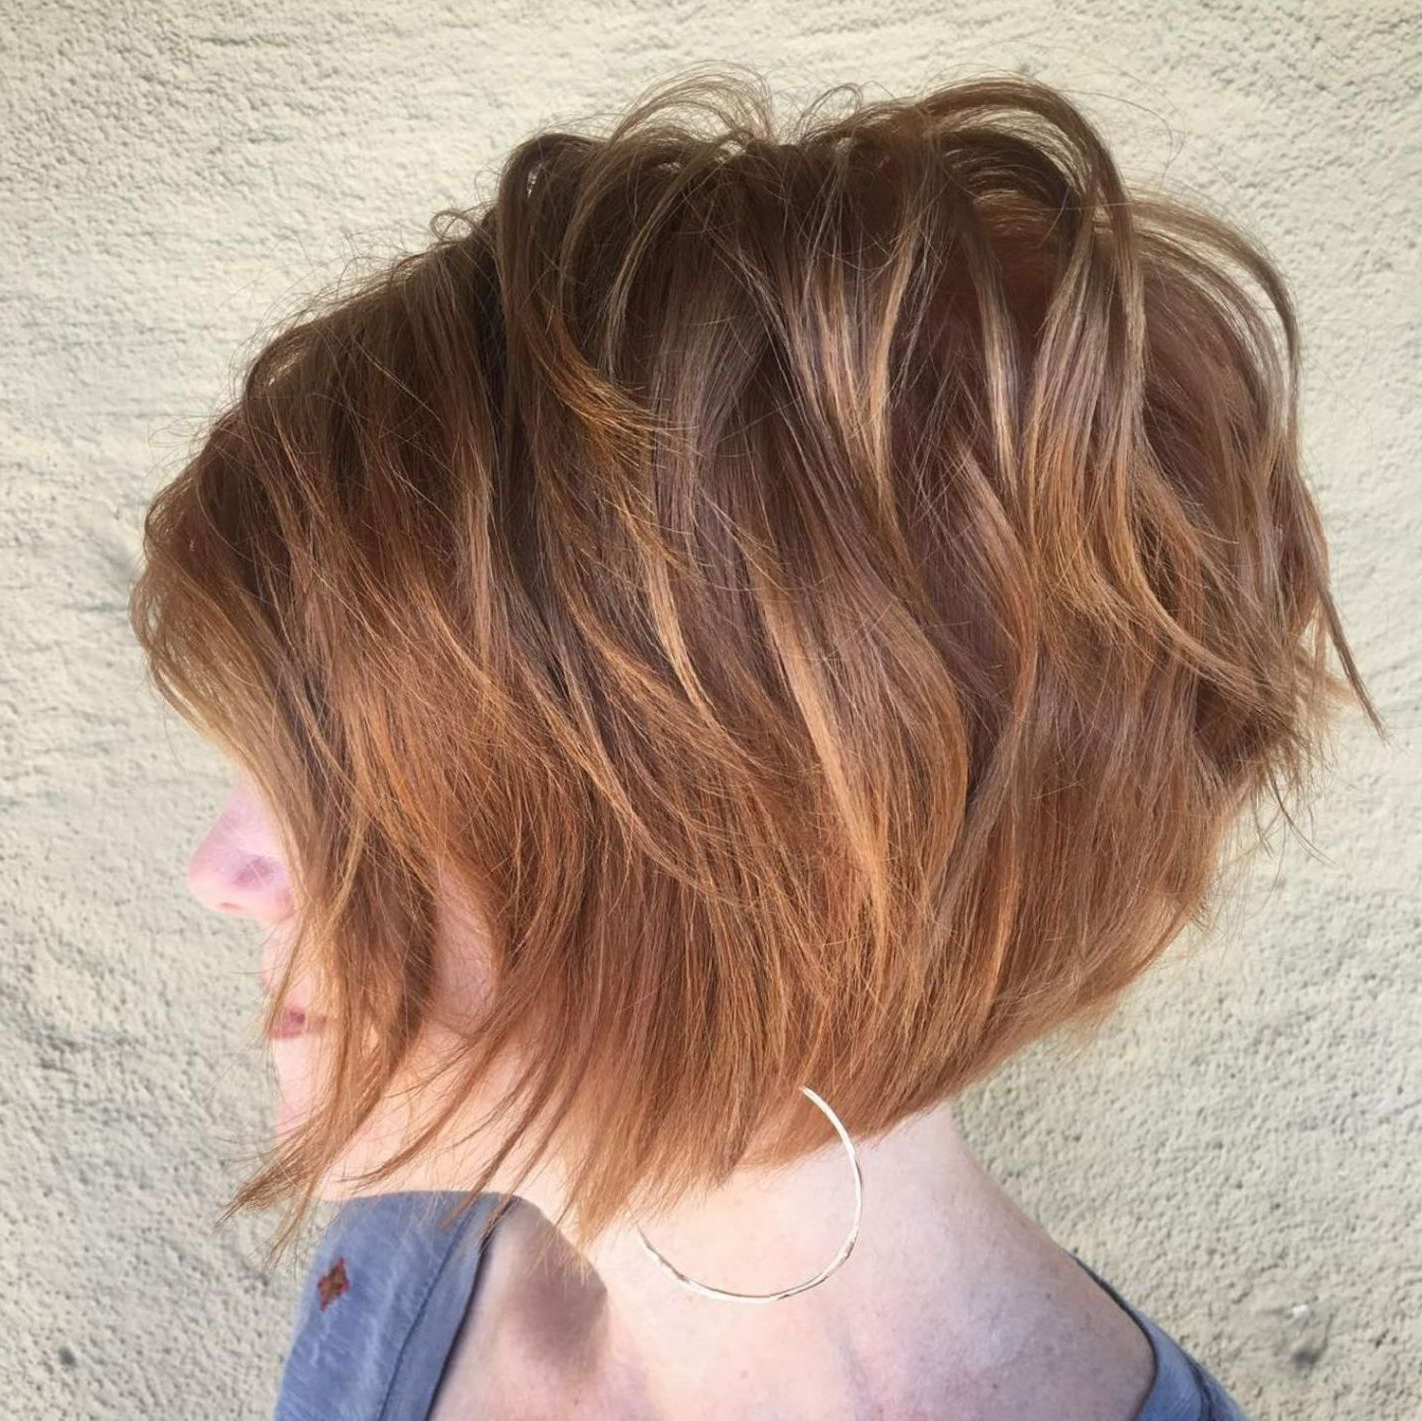 60 Short Shag Hairstyles That You Simply Can't Miss With Bronde Bob Shag Haircuts With Short Back (View 4 of 20)